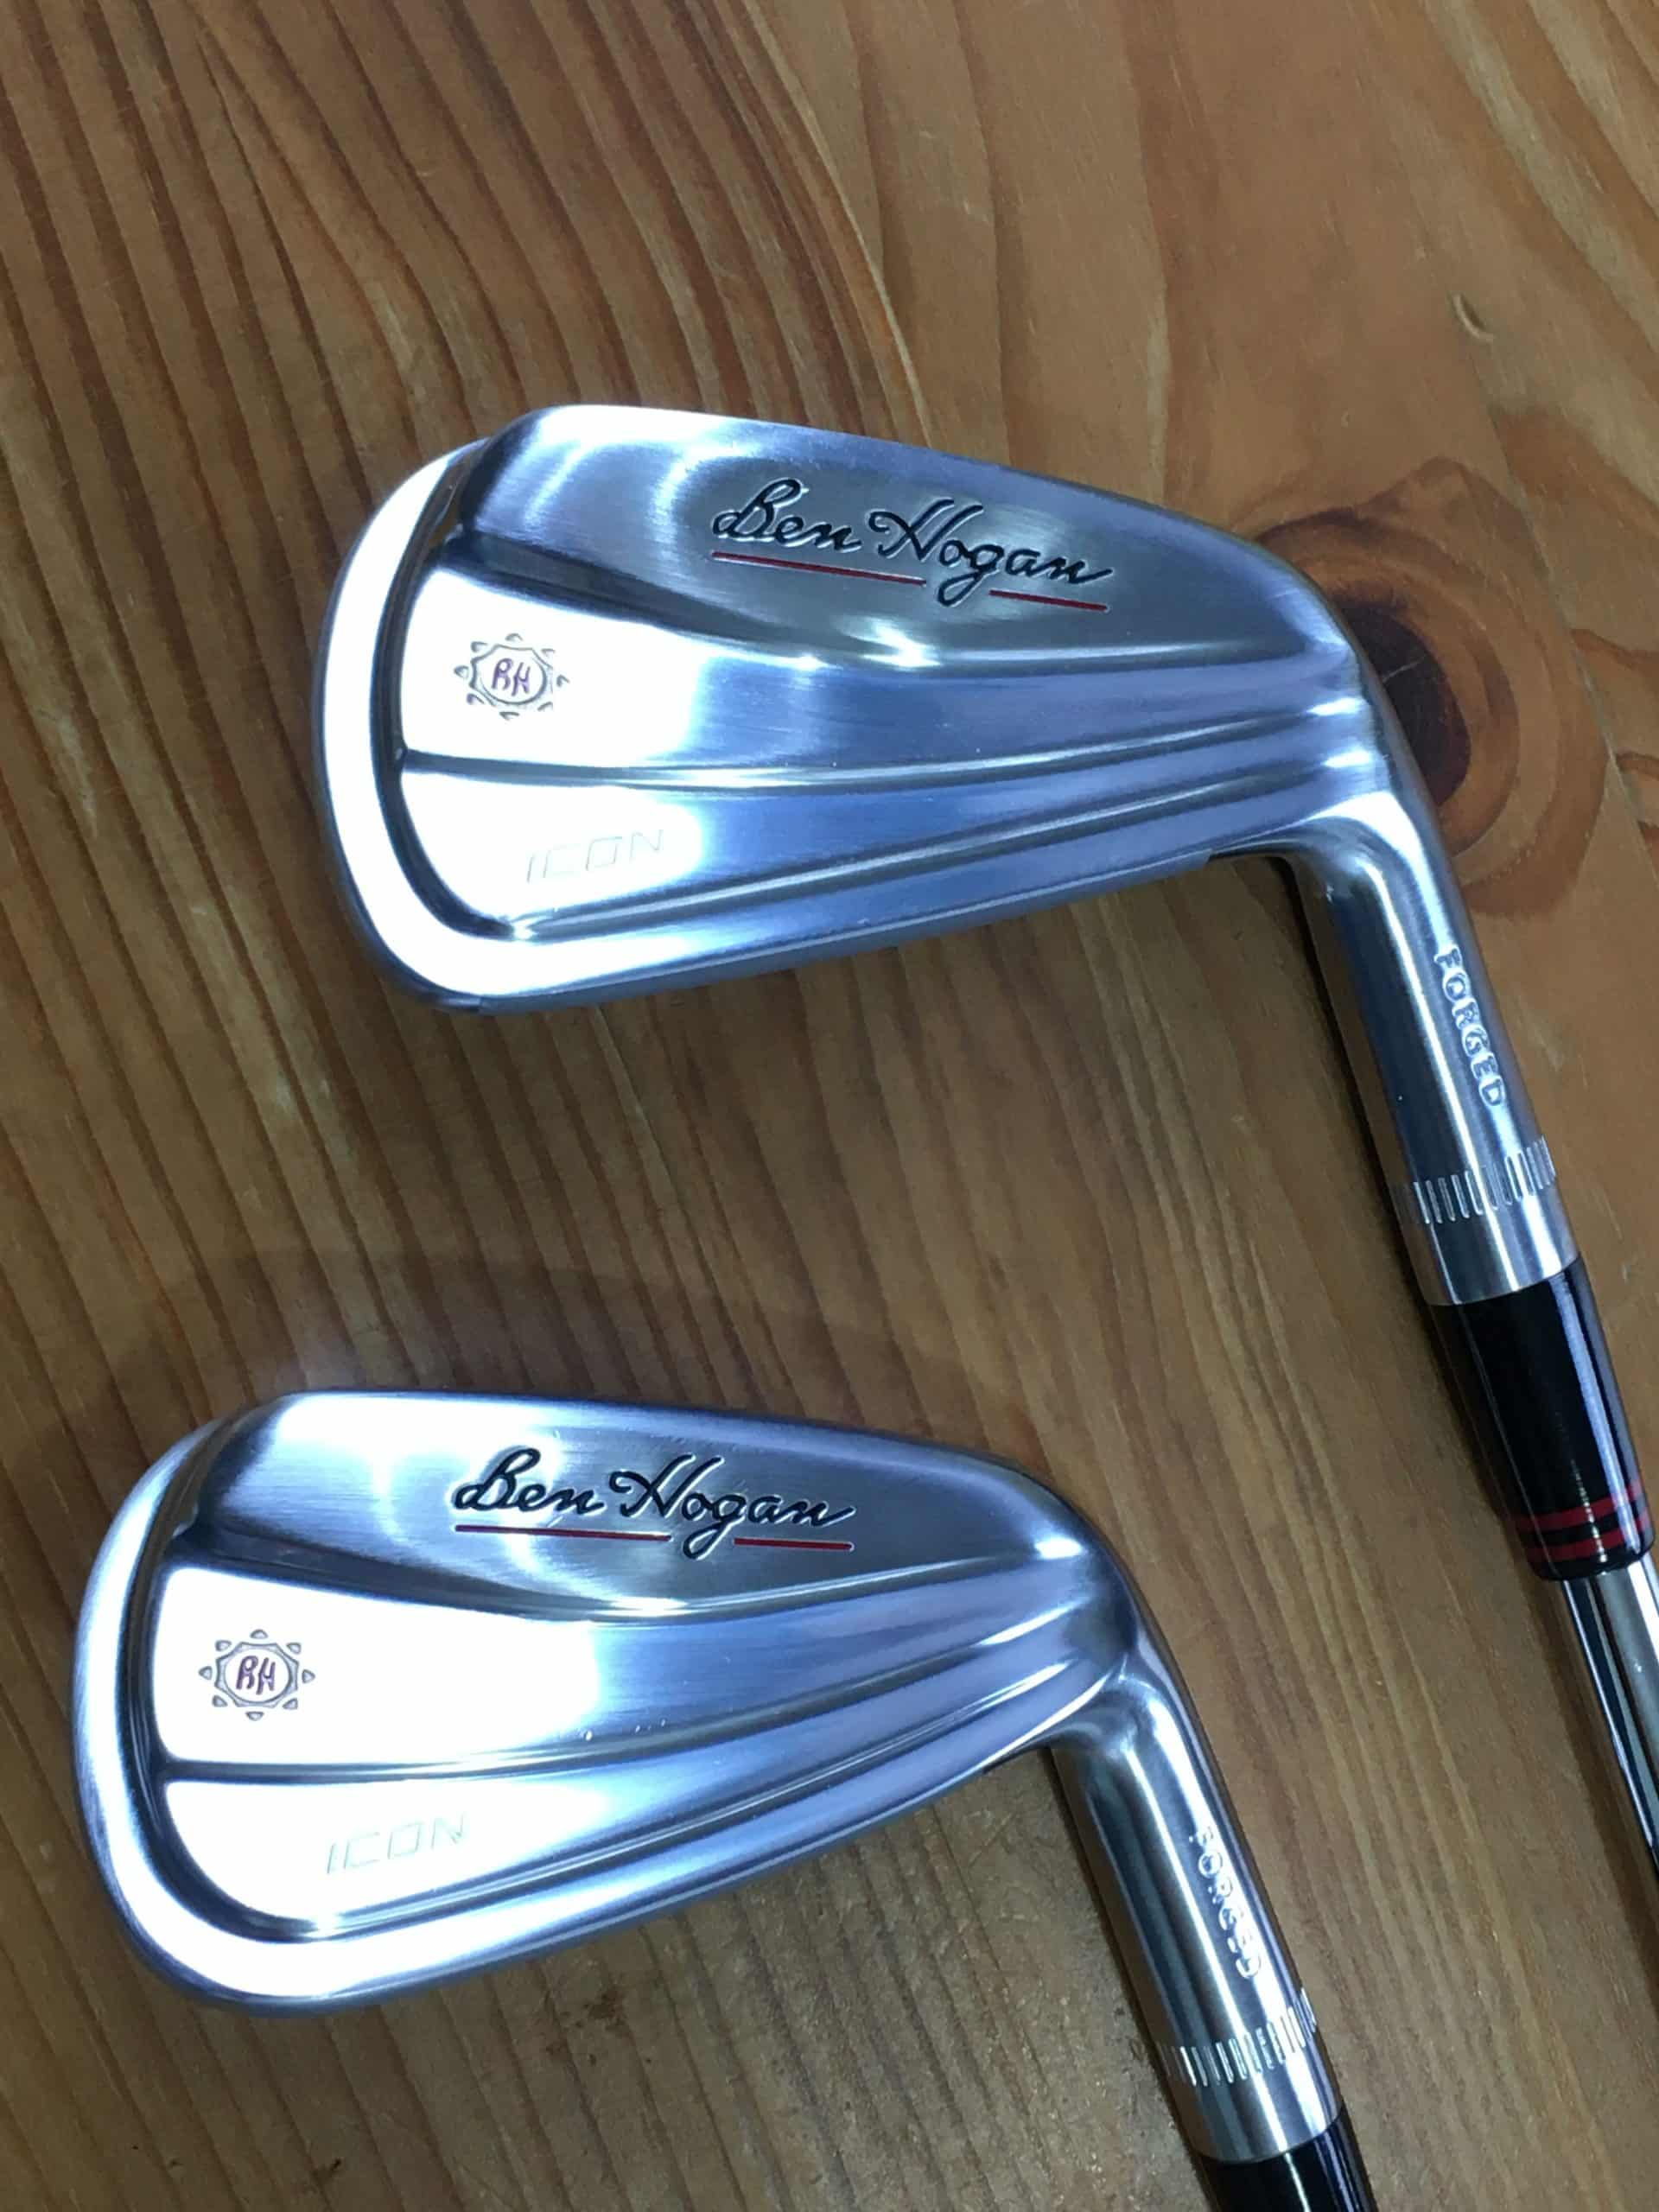 Icon 6-iron and 9-iron